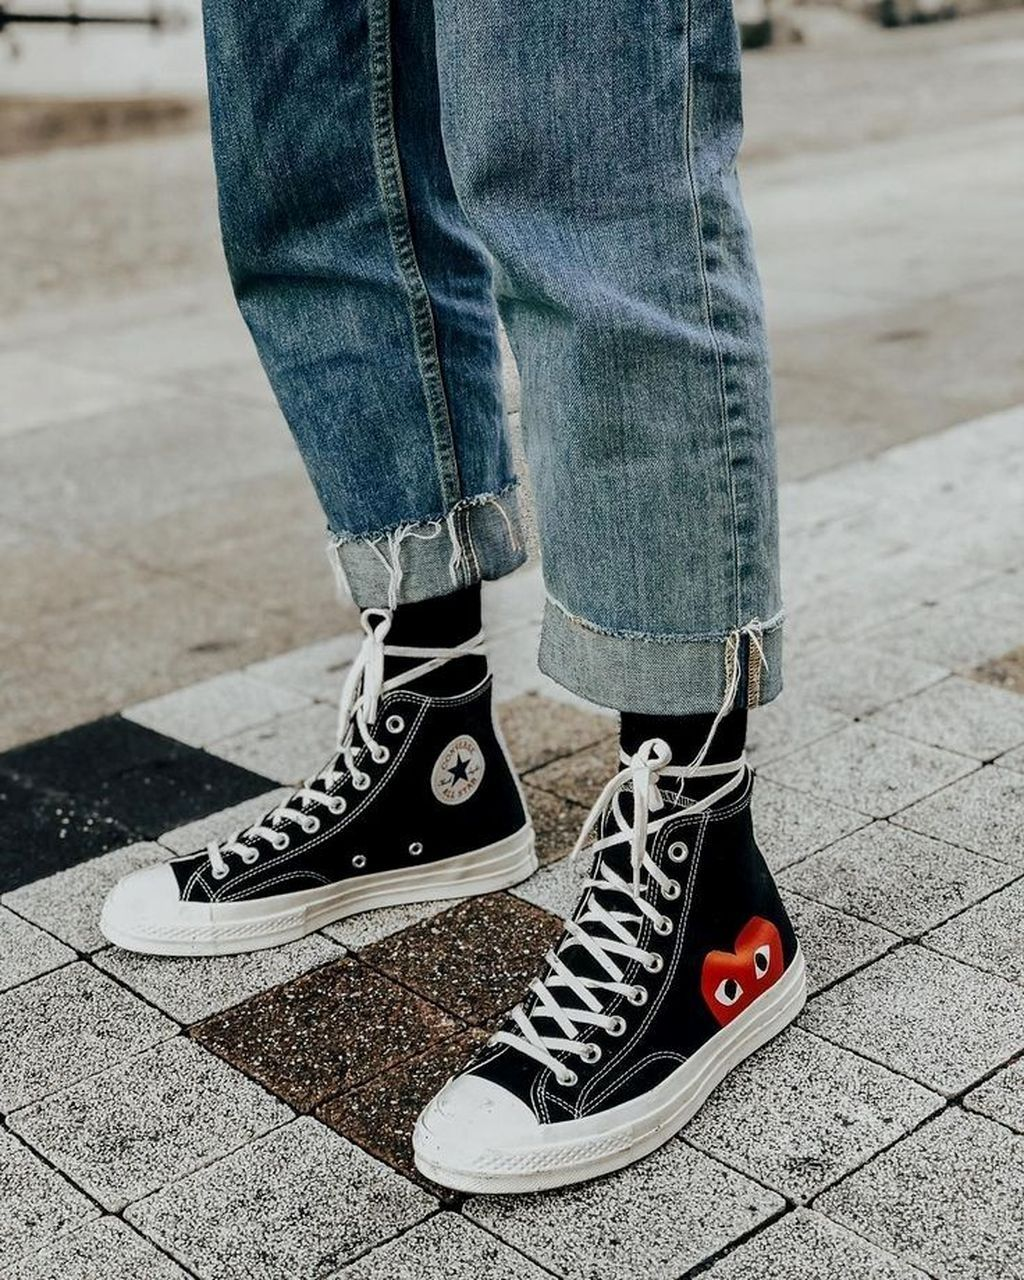 47 Best Shoes Ideas For Men Style 2019 in 2020 | Sneakers